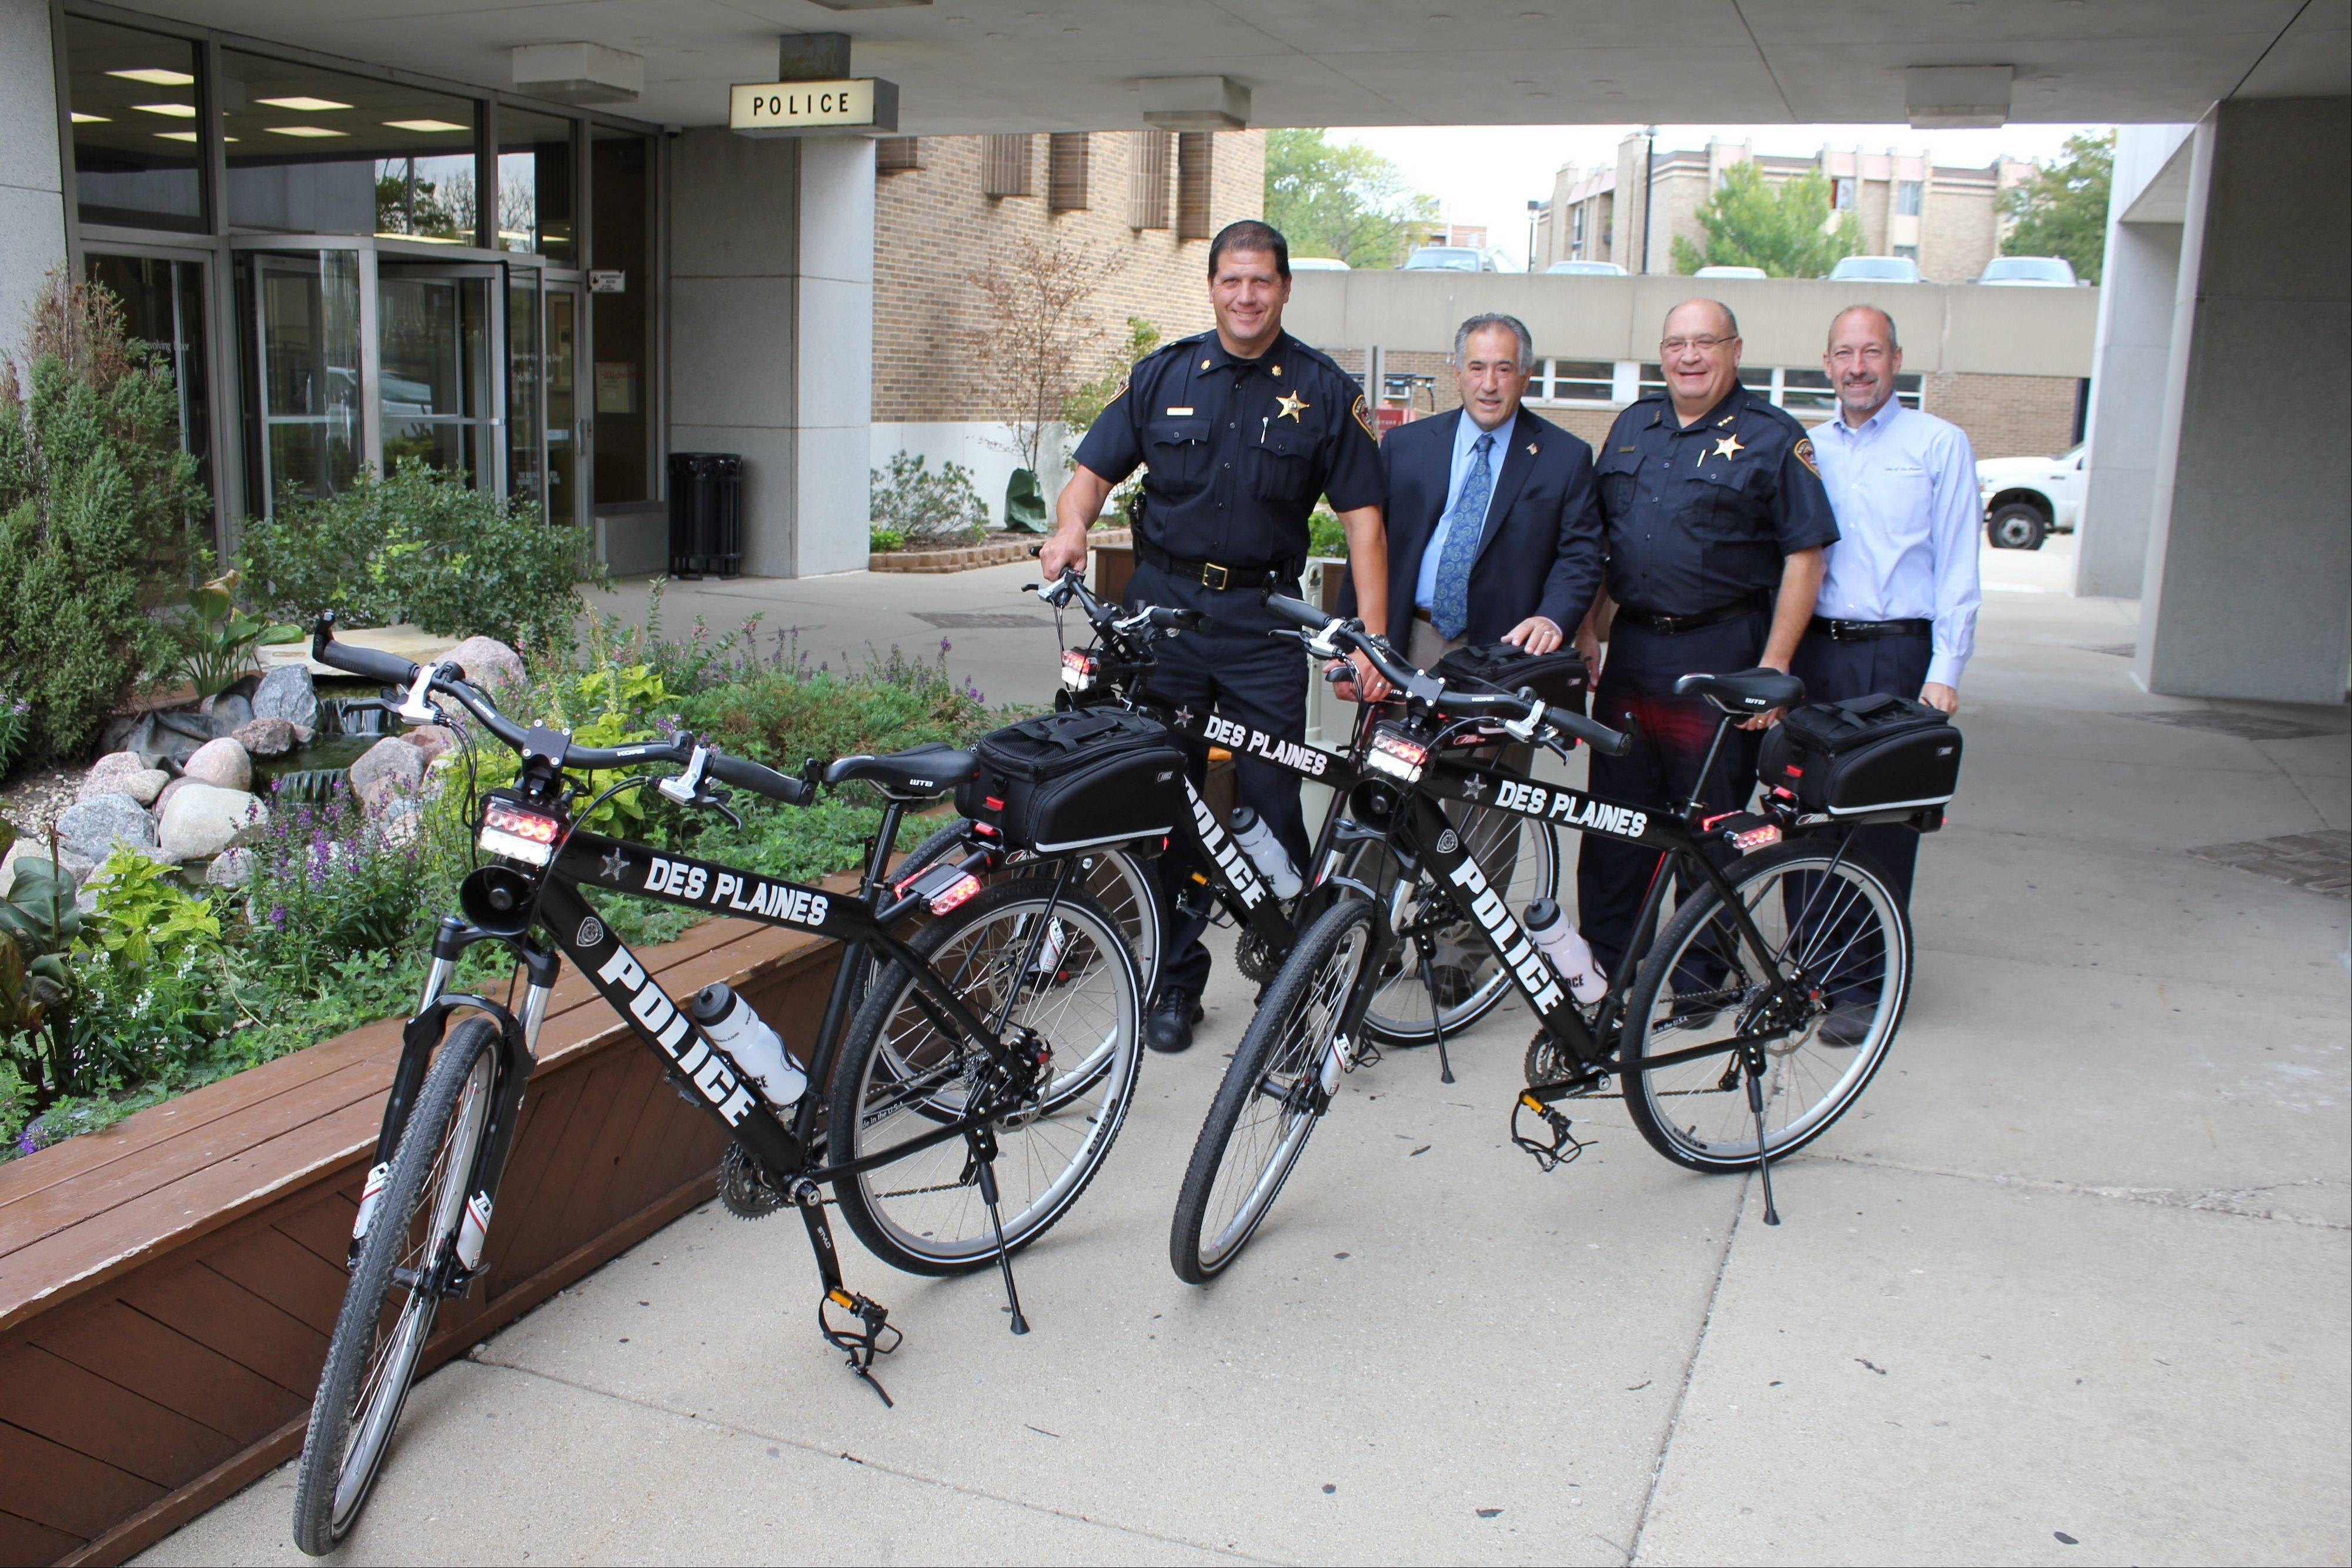 The Des Plaines Police Department displayed four new iForce bicycles outside the police station on Miner Street. Pictured, from left, are Des Plaines Police Commander Dan Niemann, Mayor Martin J. Moylan, police Chief William Kushner, and City Manager Michael Bartholomew with the new bicycle fleet.